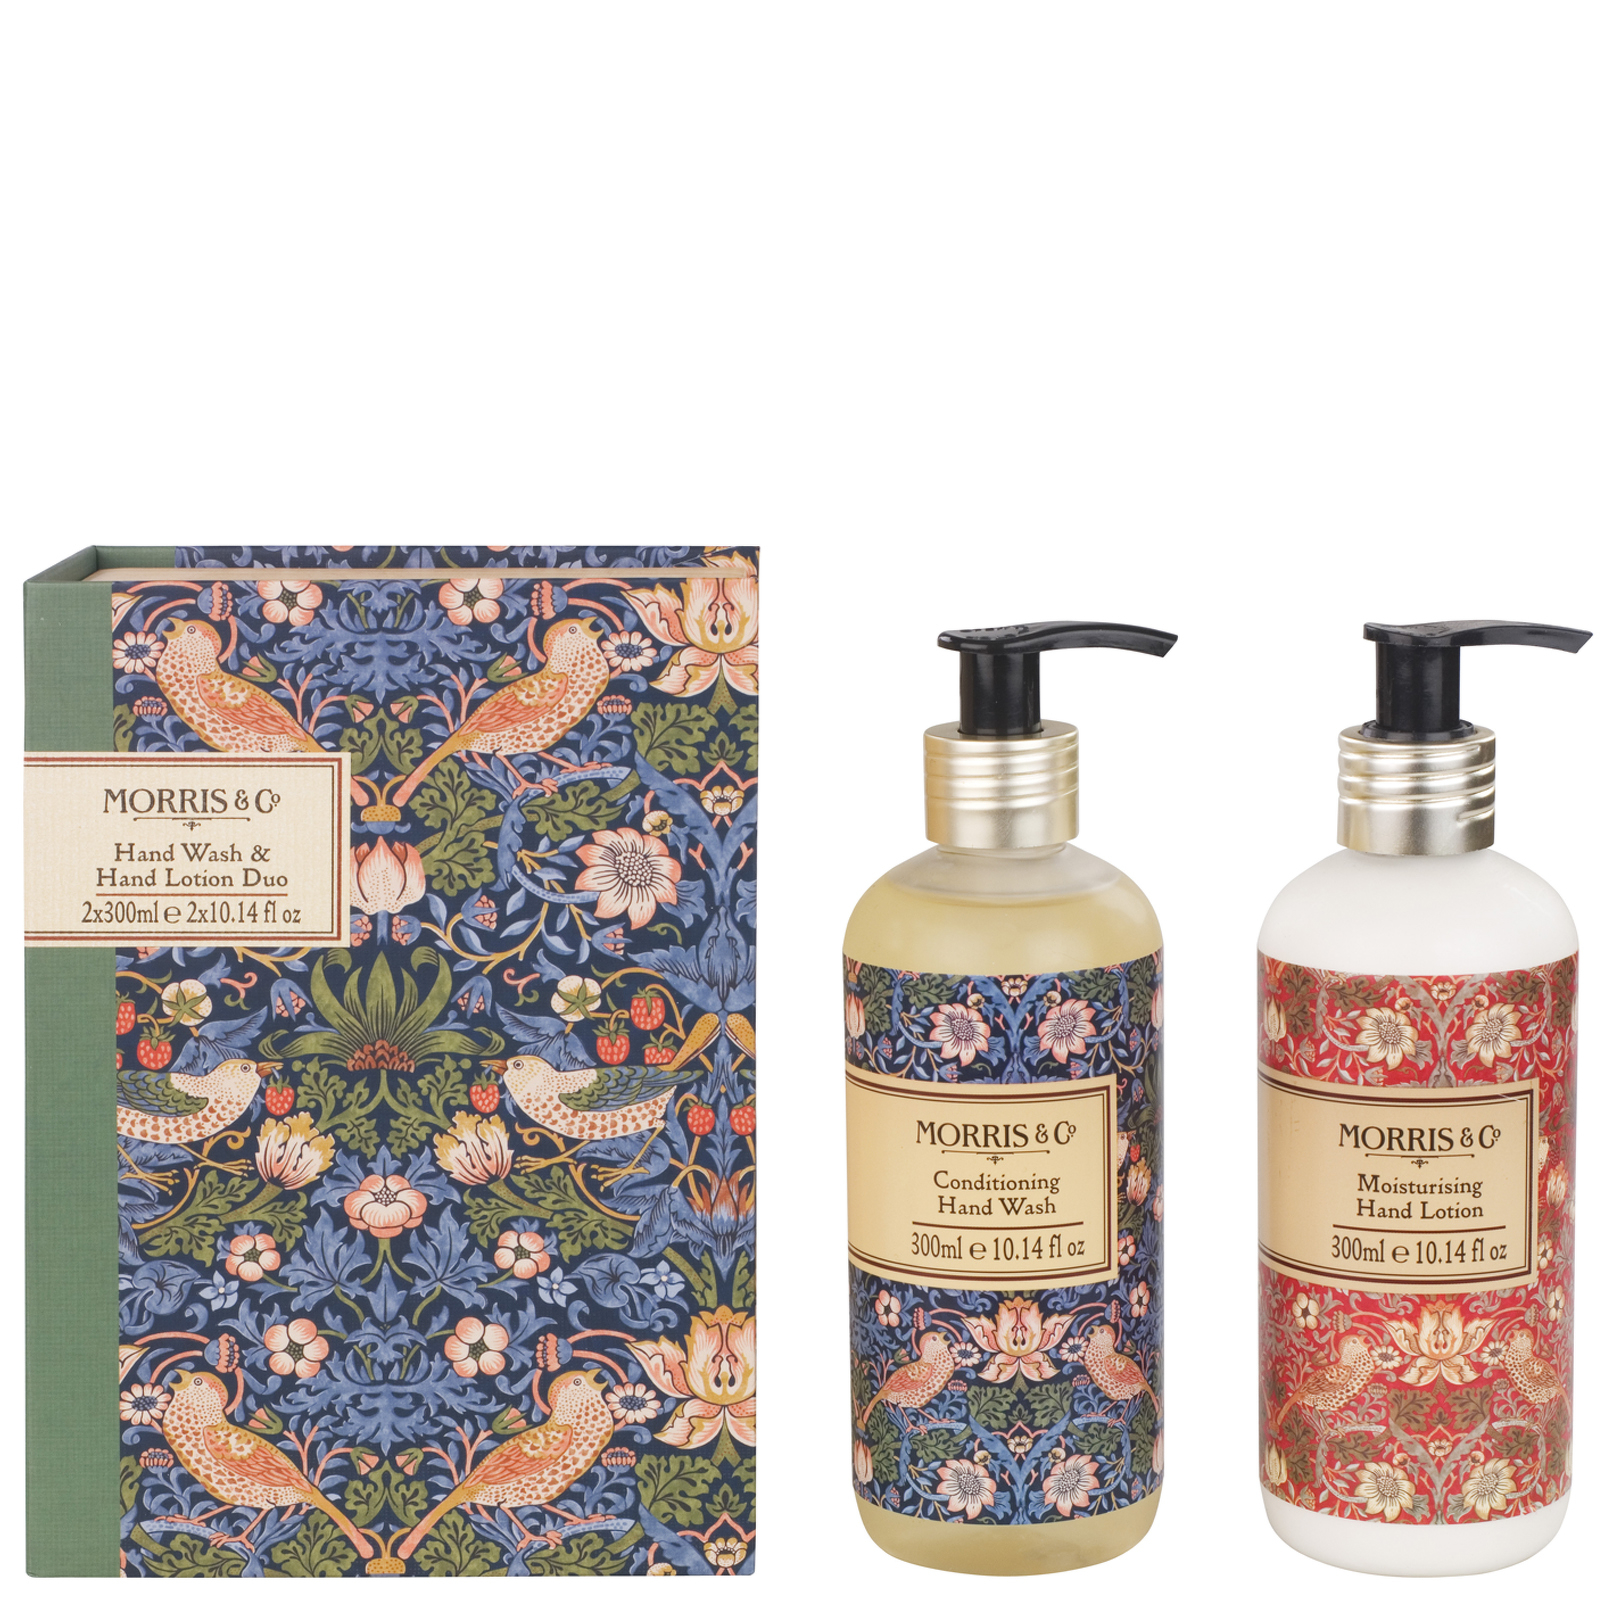 MORRIS & Co Strawberry Thief Hand Wash & Hand Lotion Duo 2 x 300ml